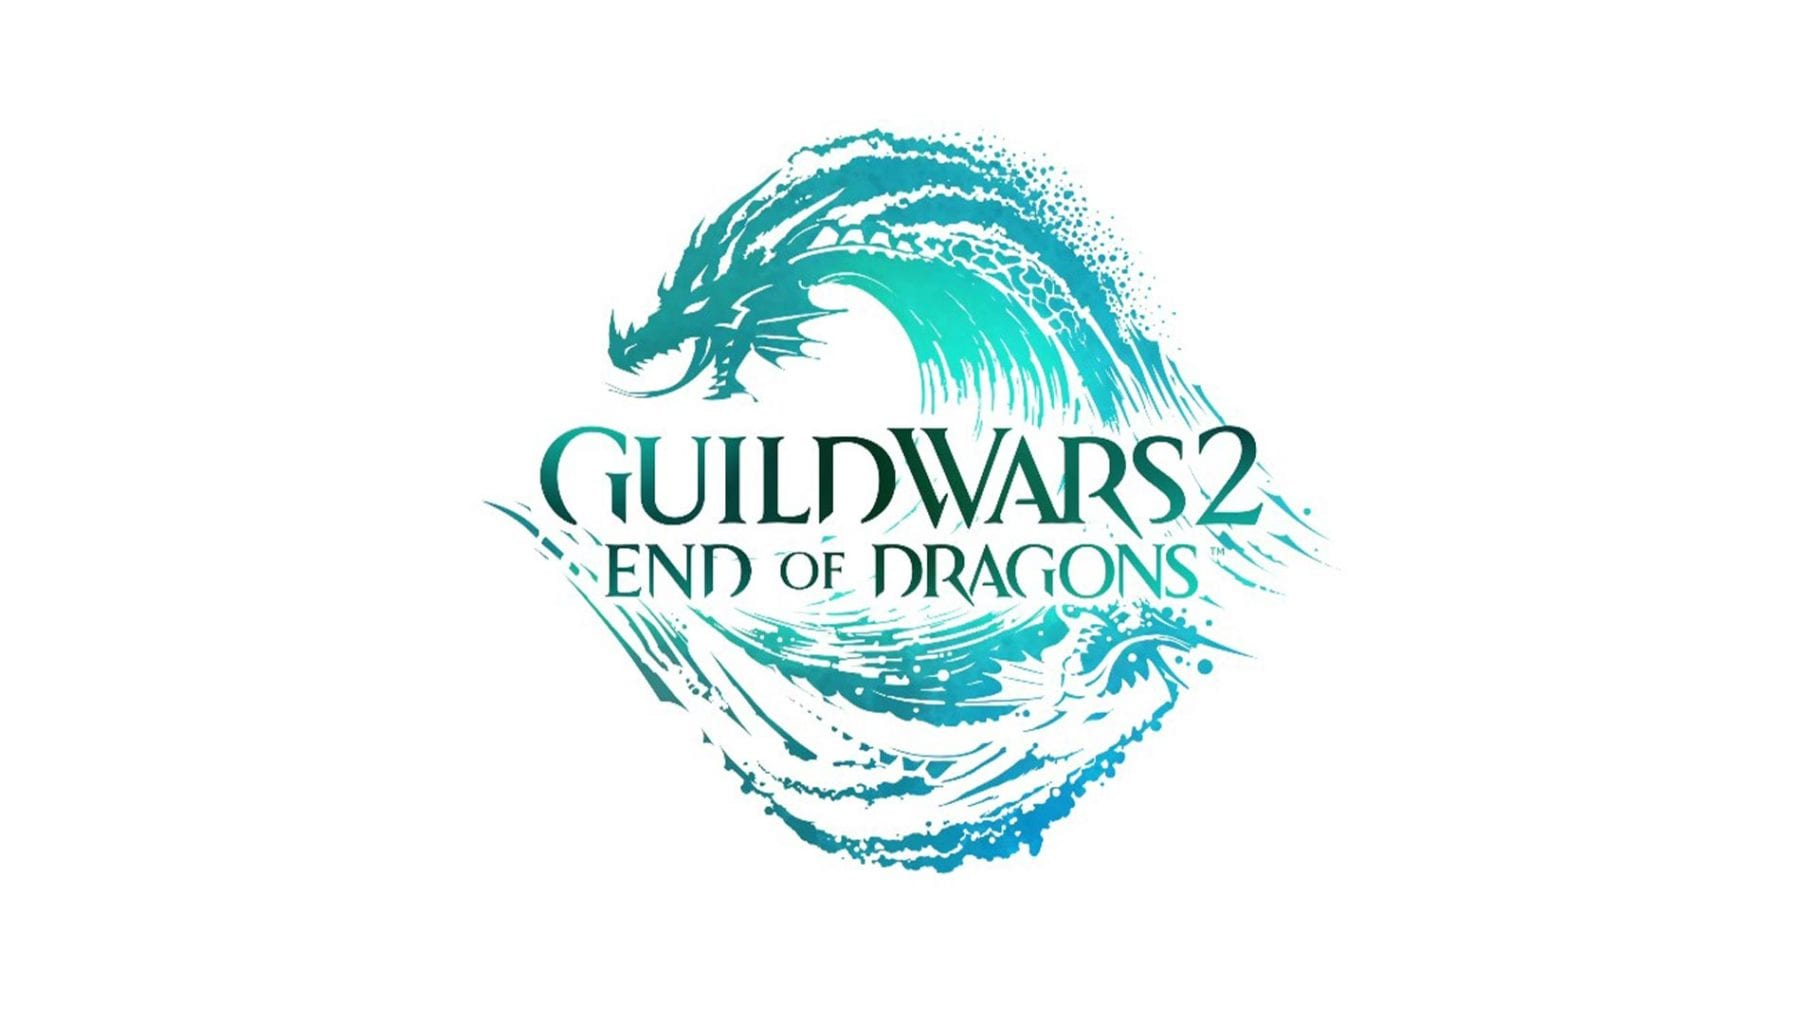 Guild Wars 2: End of Dragons - Release & Trailer